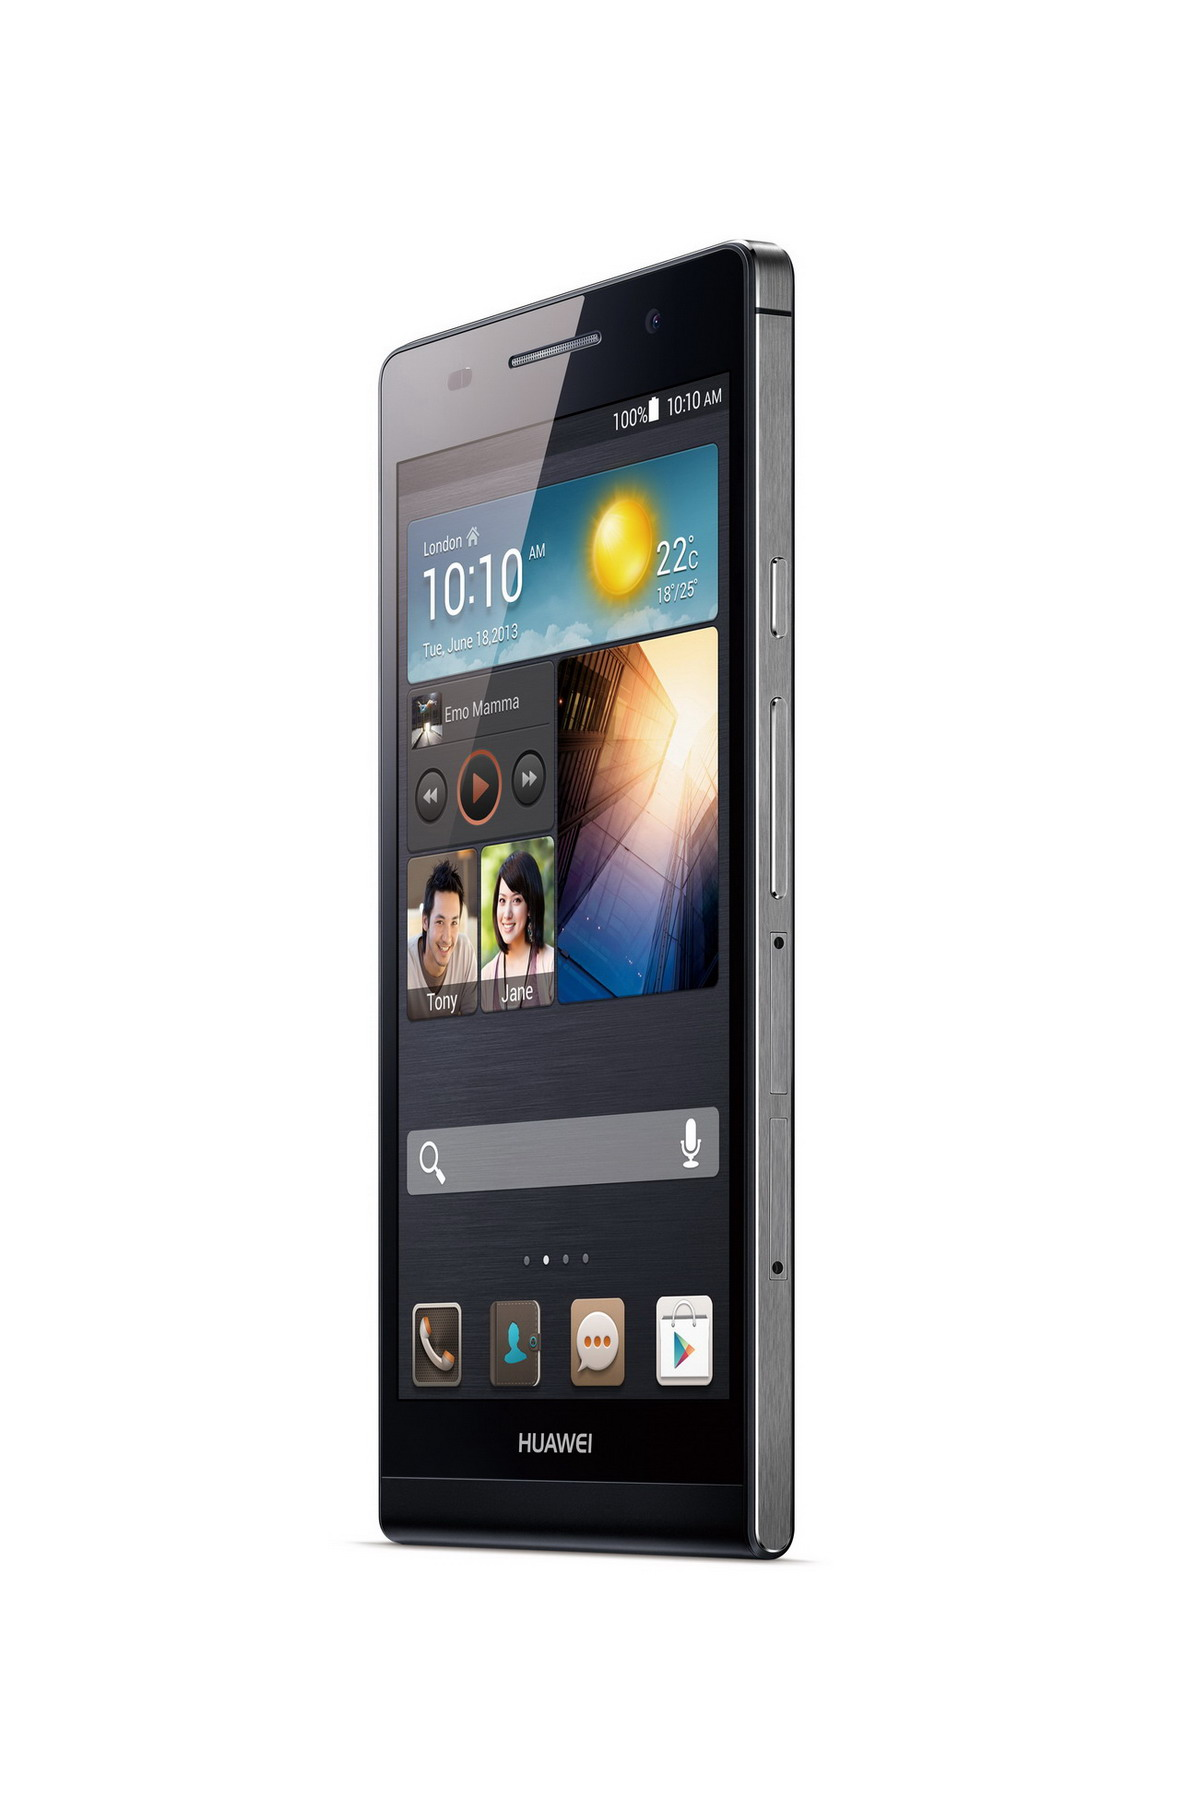 HUAWEI Consumer  Make it PossibleHUAWEI Official Site